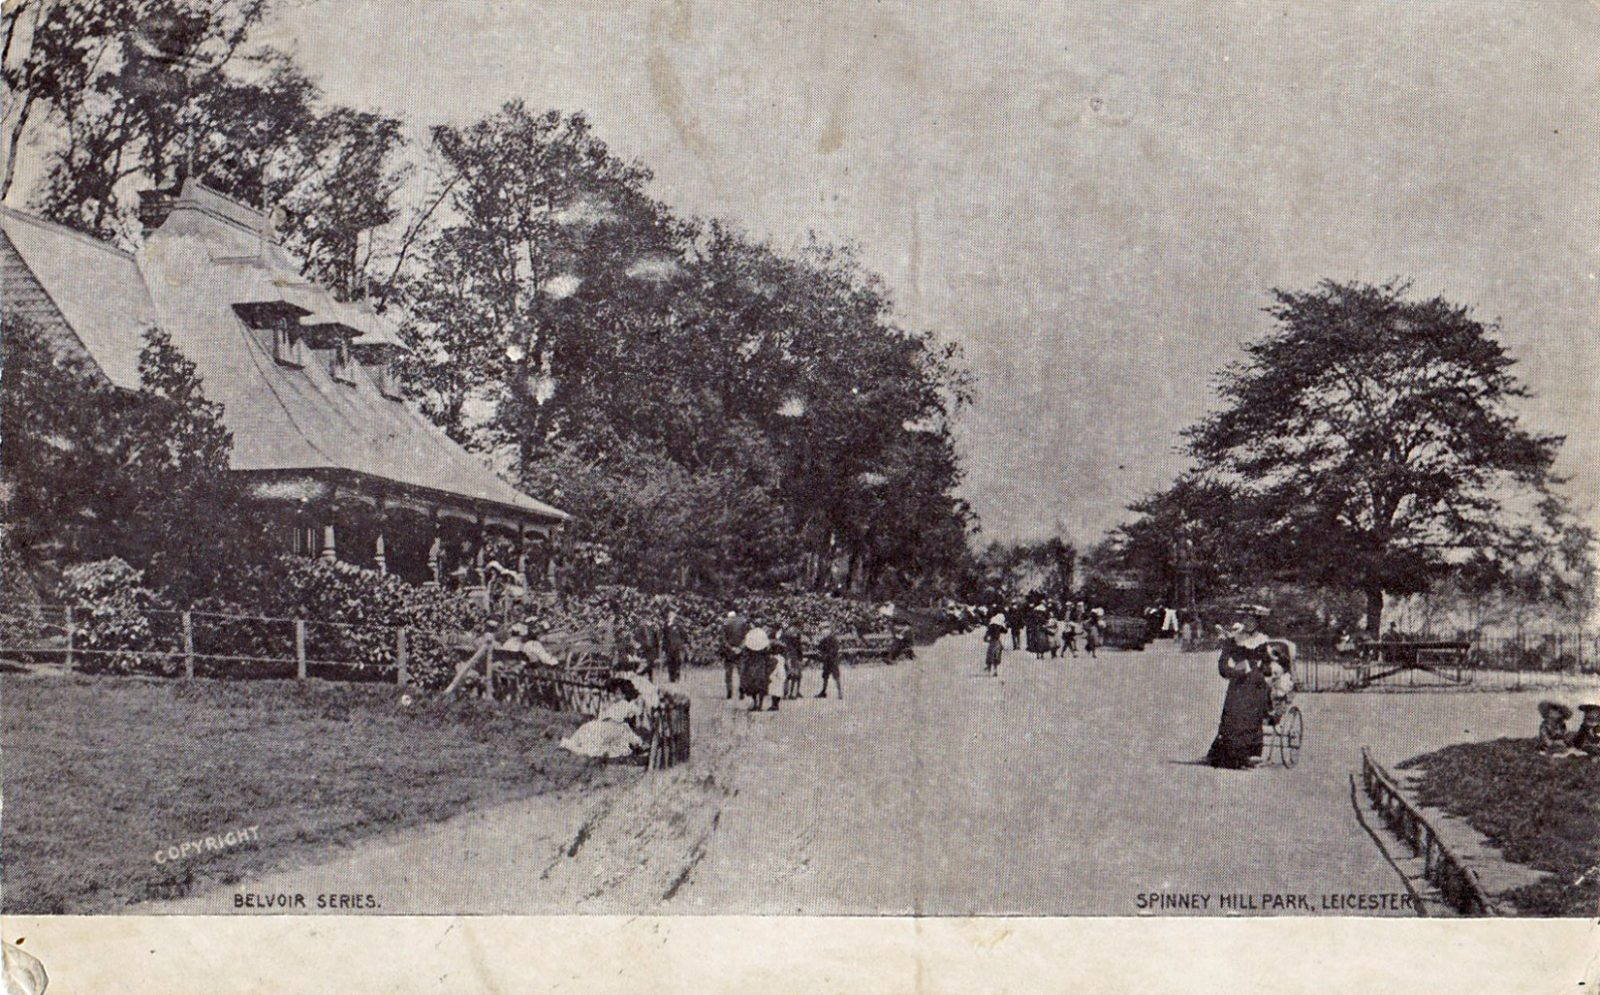 Spinney Hill Park, Leicester. 1901-1920: The Pavilion and broad avenue with people promenading and sitting. Franked 1904 (File:1473)